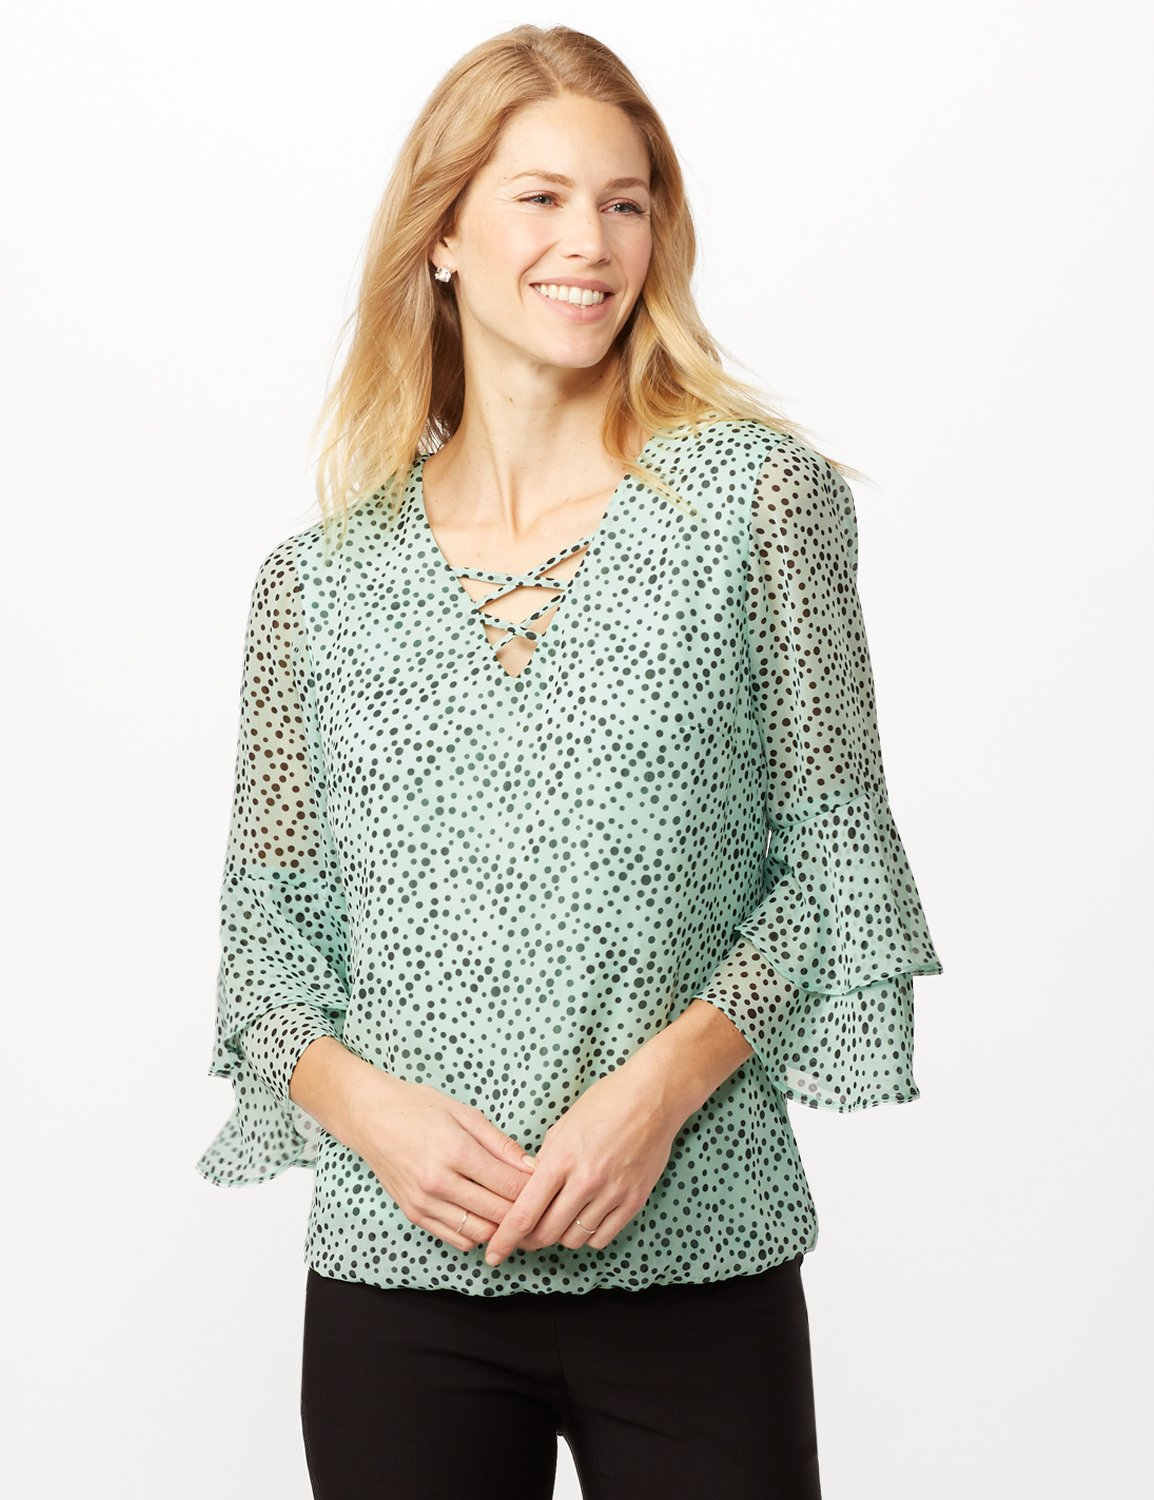 Dotted Bubble Hem Woven Top with Triple Sleeve and Crisscross Neckline Detail -Sage/black - Front